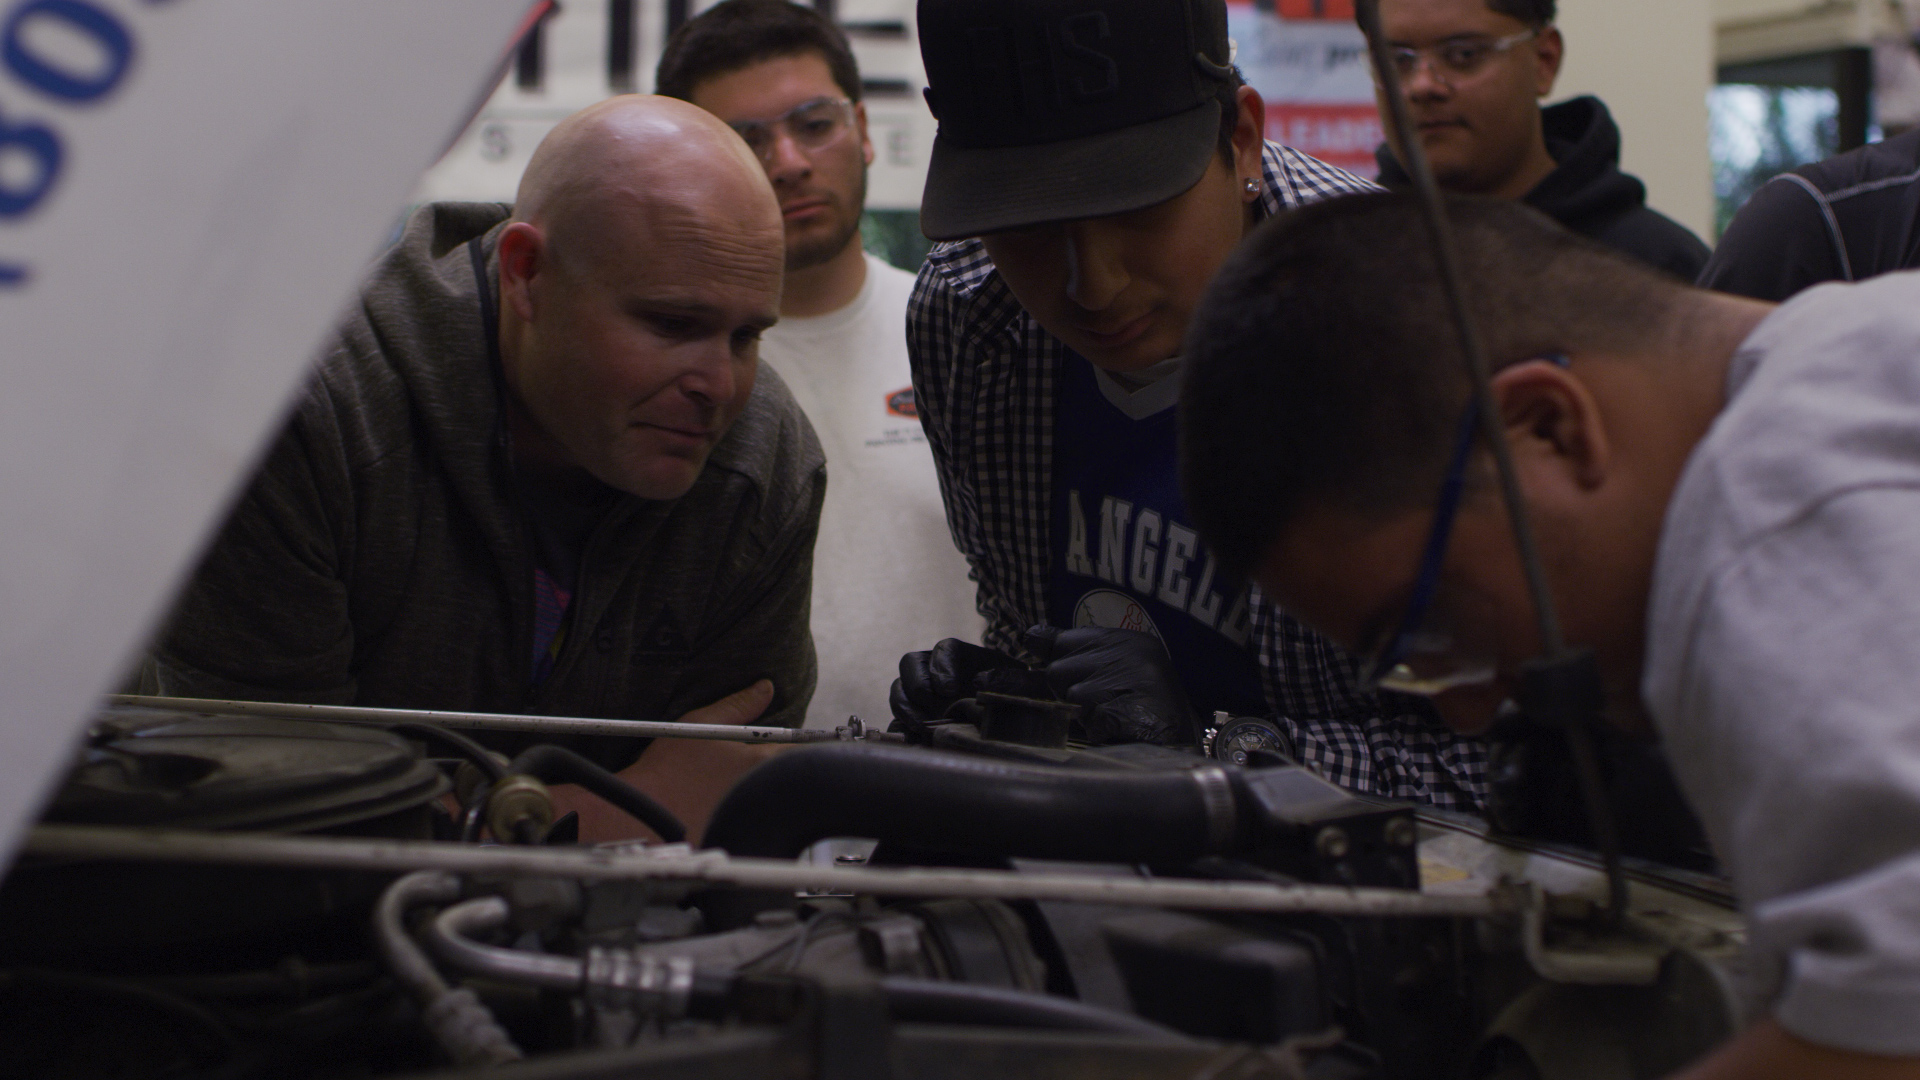 DRAGG students looking under the hood of a car.